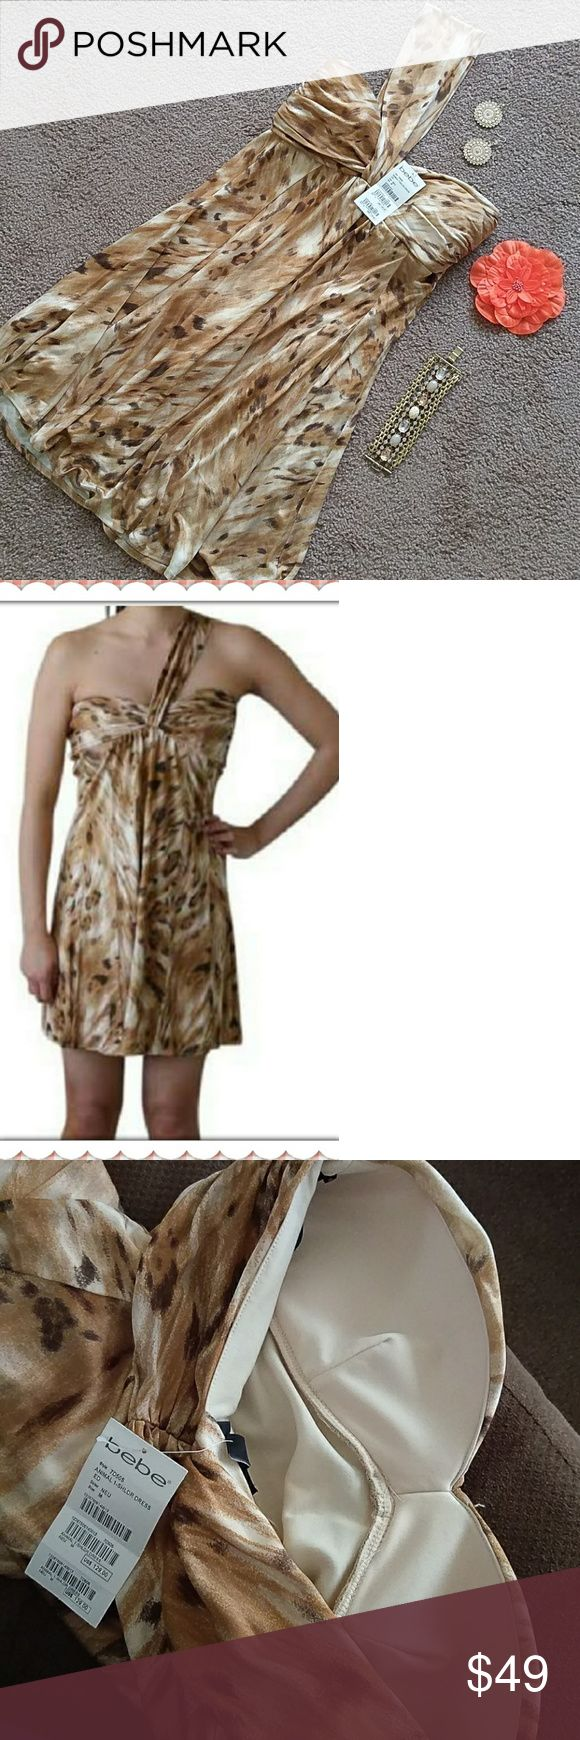 NWT BEBE ONE SHOULDER ANIMAL PRINT SEXY DRESS 🔥🔥 Brand new with $129.00 tag still attached. Strap can be worn on either side since it is attached in the middle. Completely lined. All neutral colors such as tan, beige, brown etc. Great dress for going out on a summer night! bebe Dresses Mini